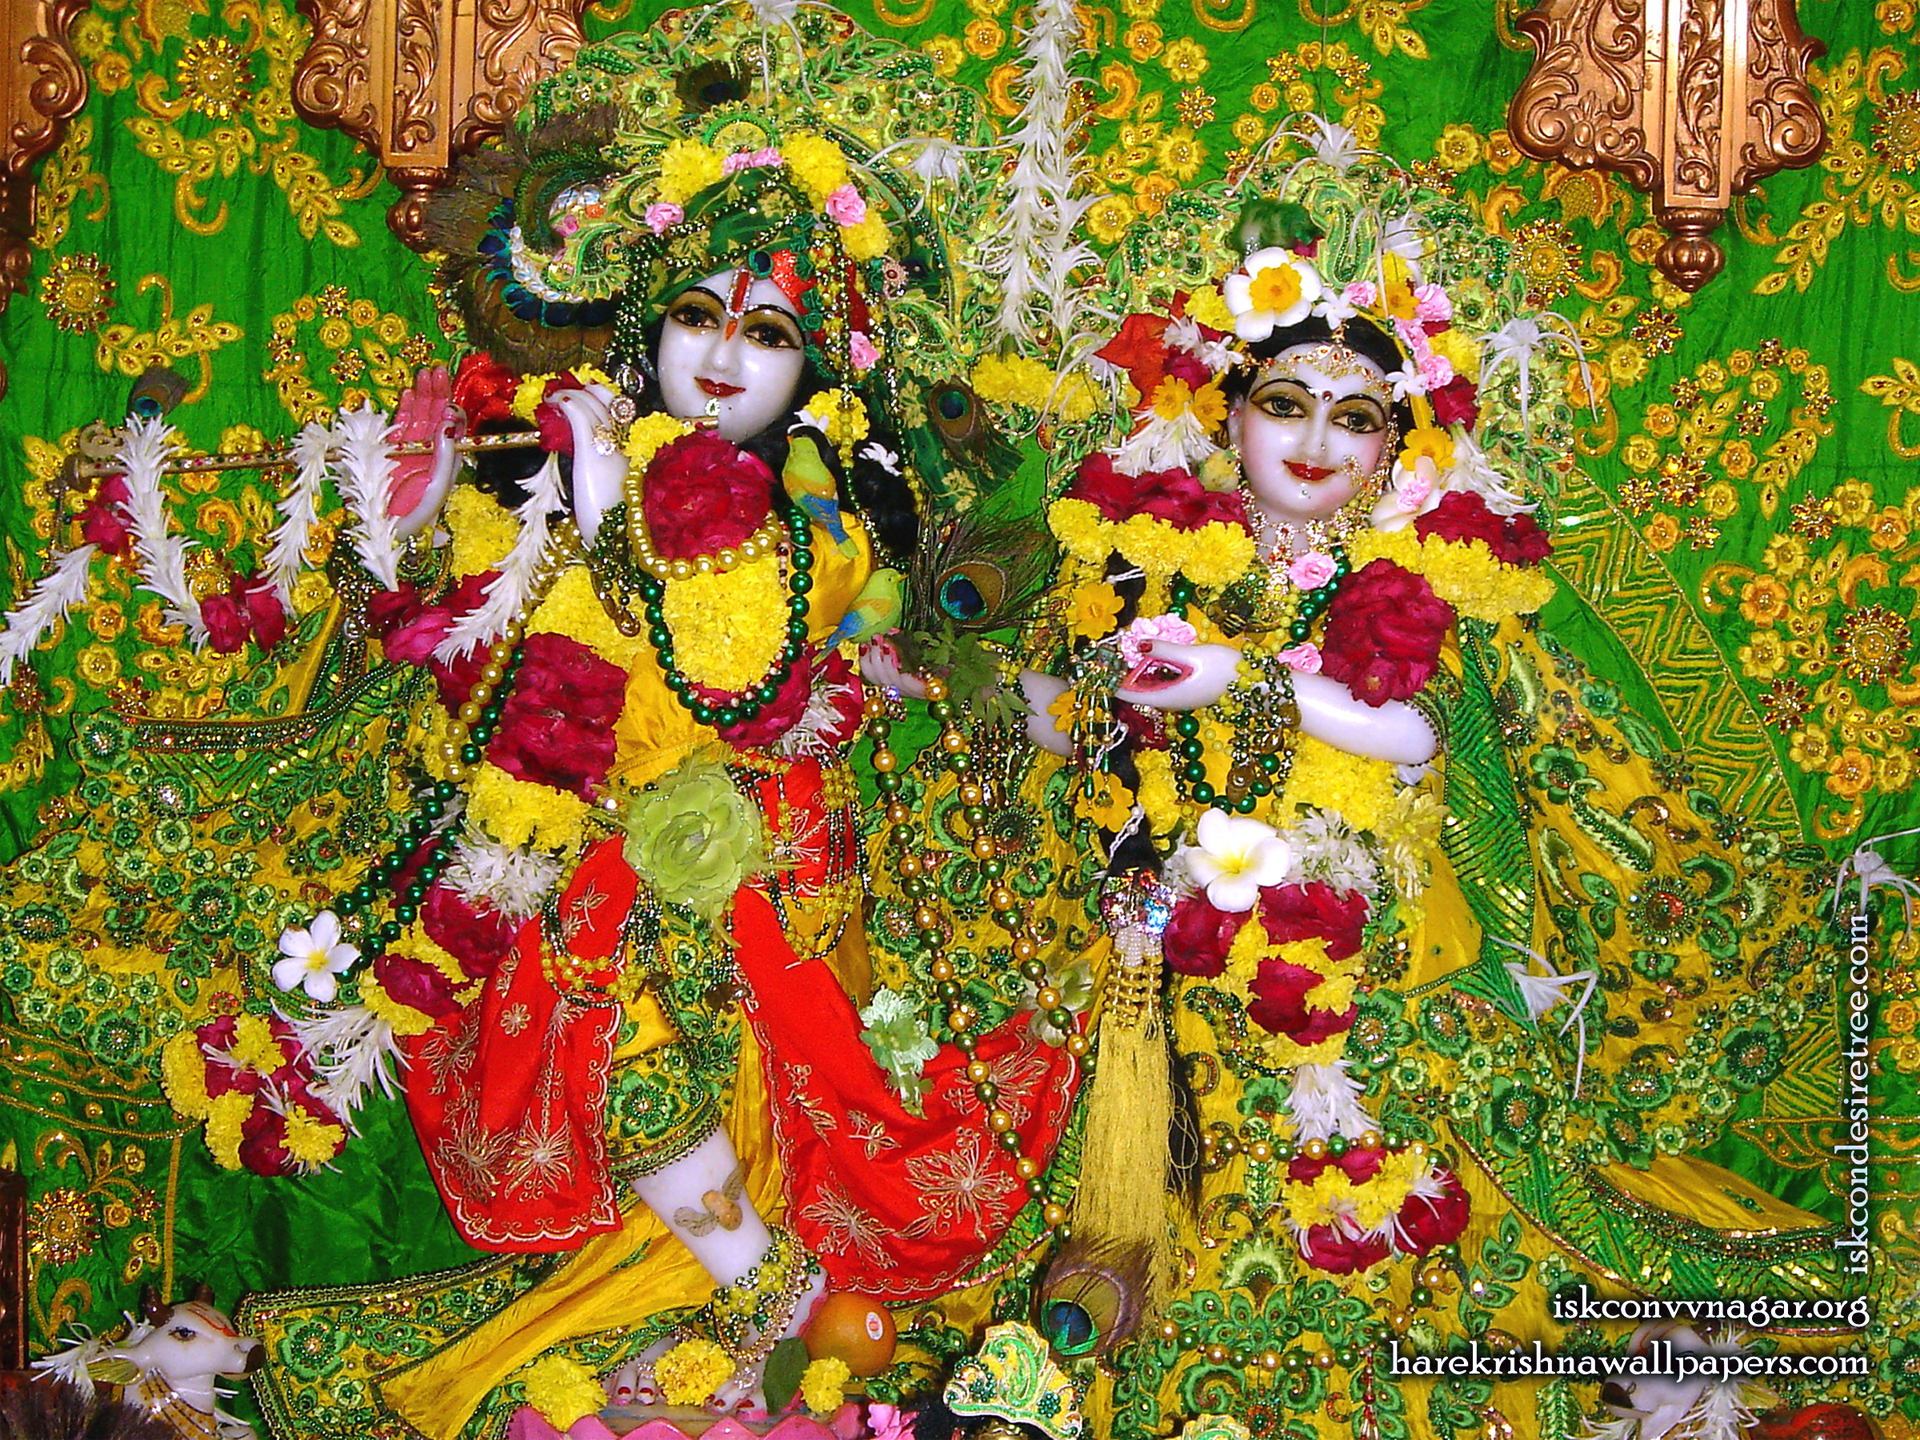 Sri Sri Radha Giridhari Wallpaper (011) Size 1920x1440 Download